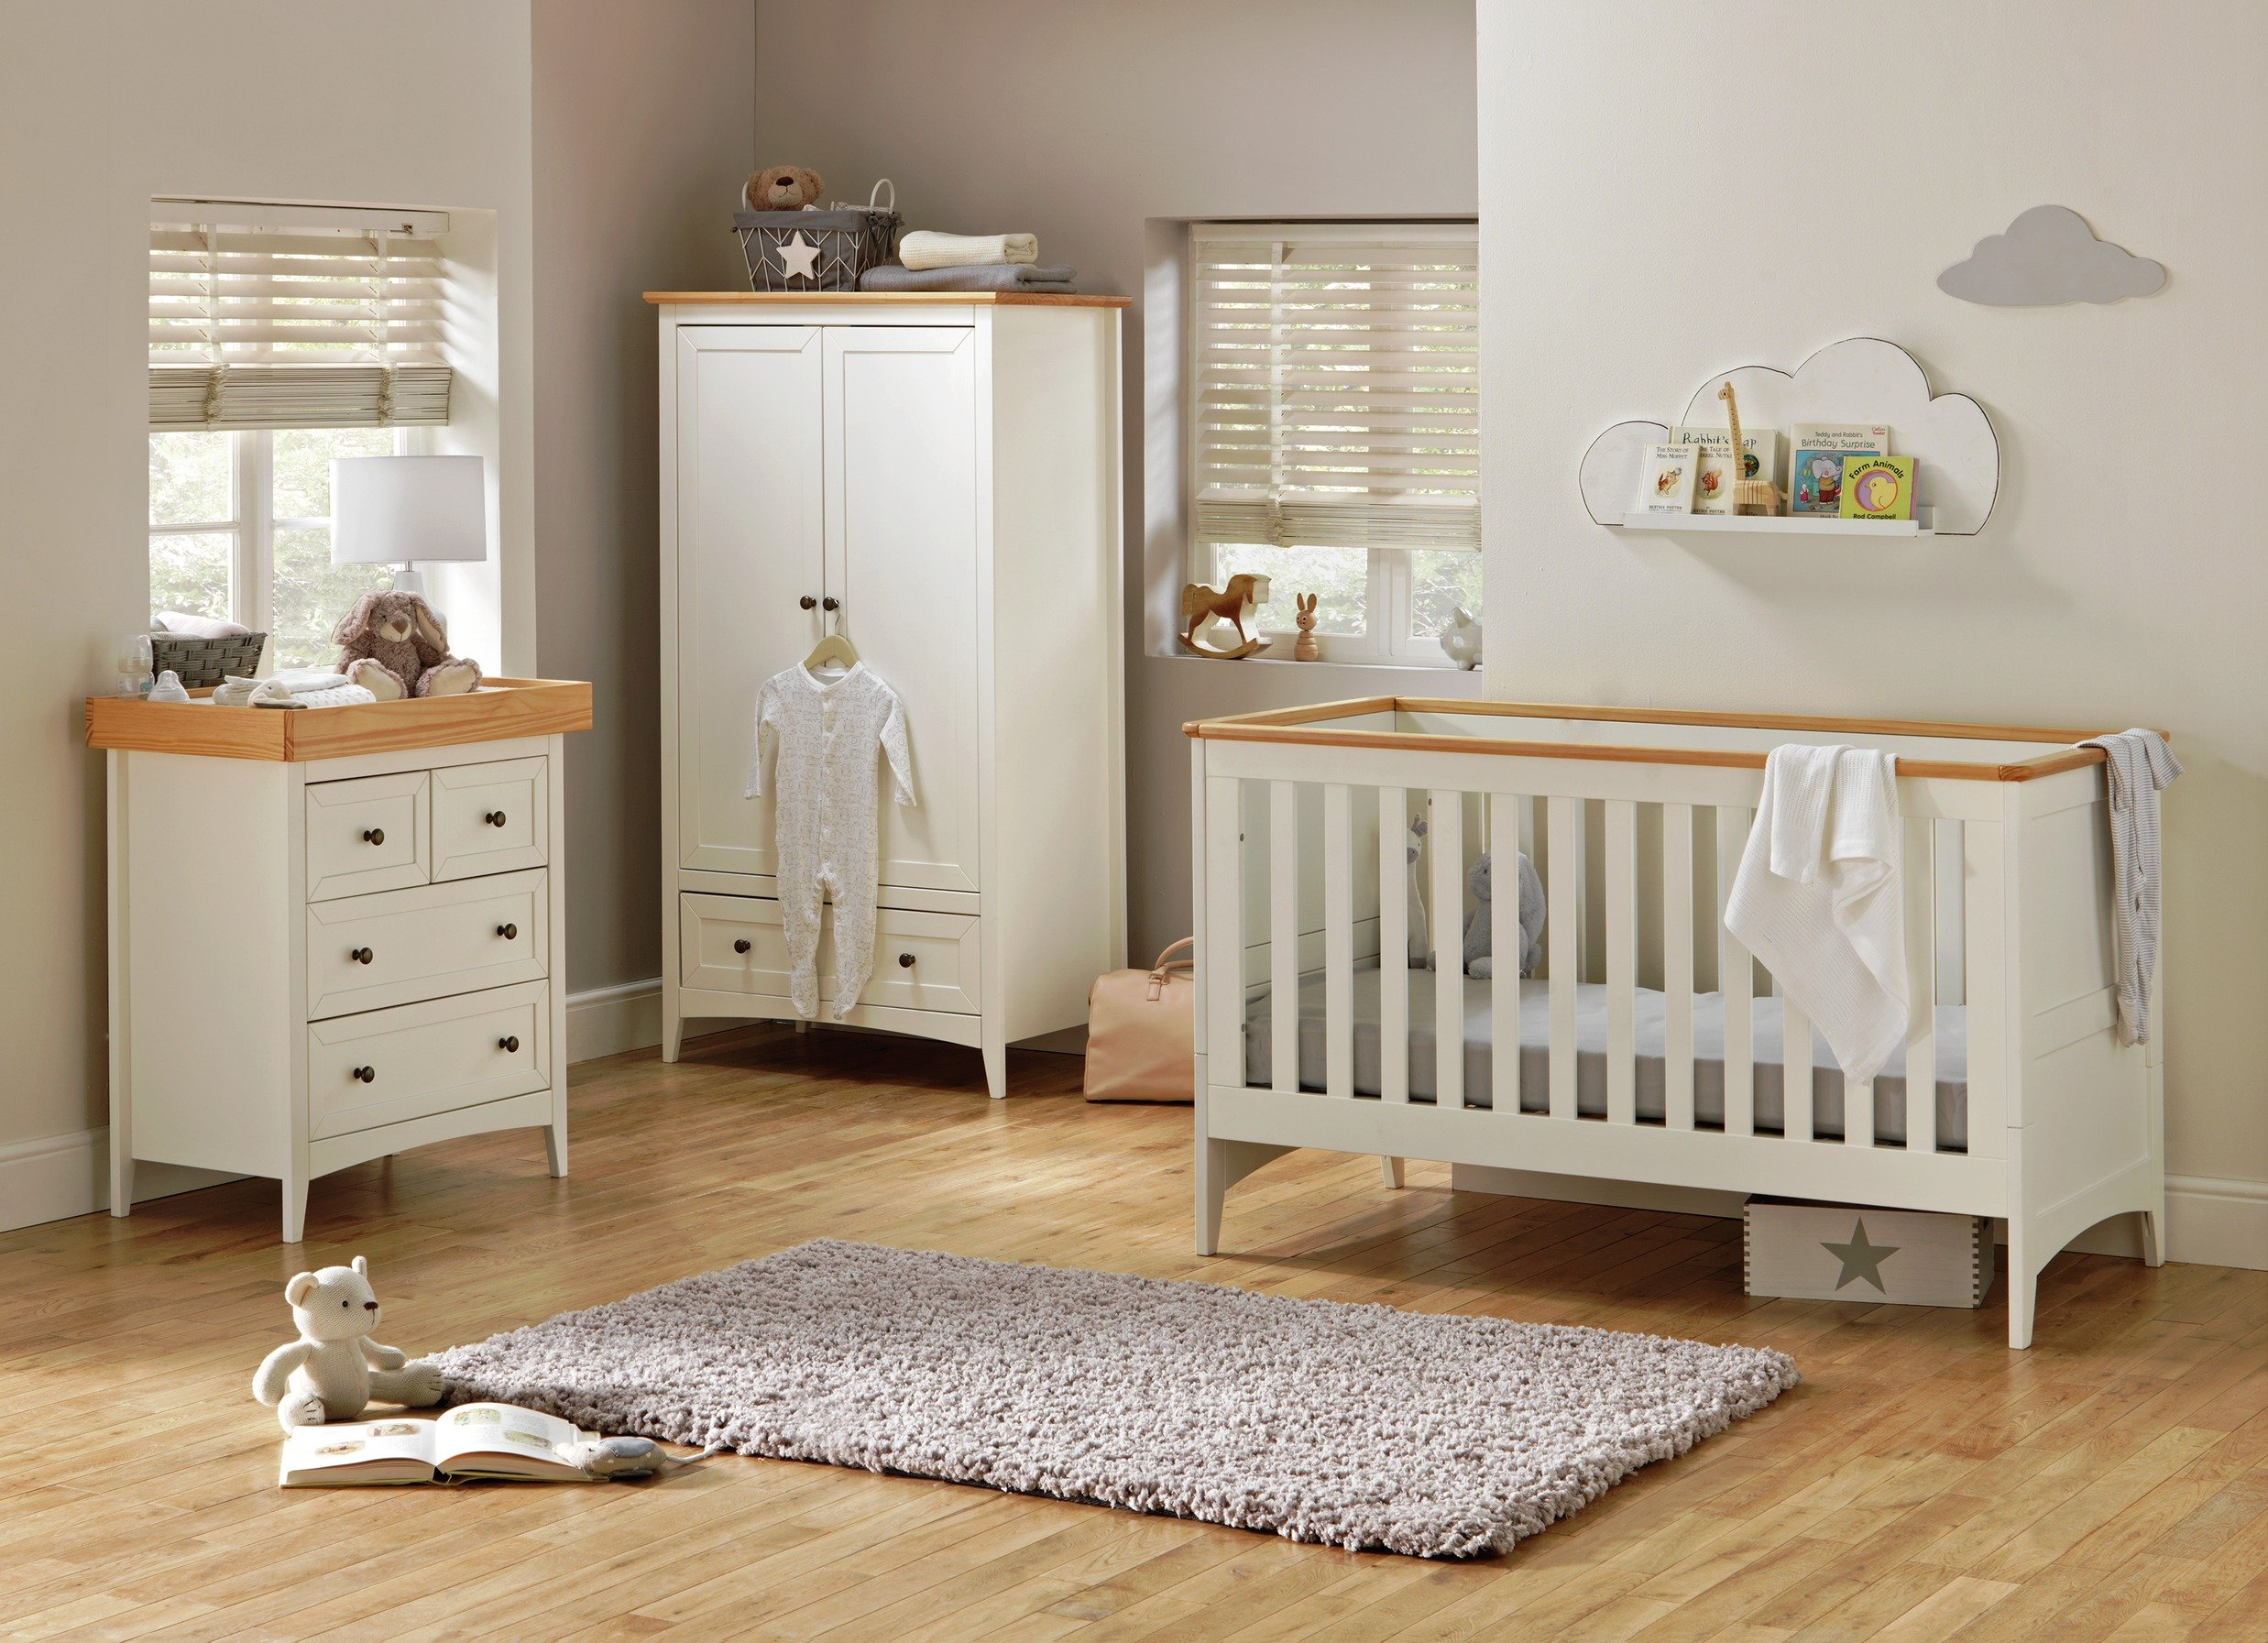 Image of Cuggl Camborne 3 Piece Set - Two Tone